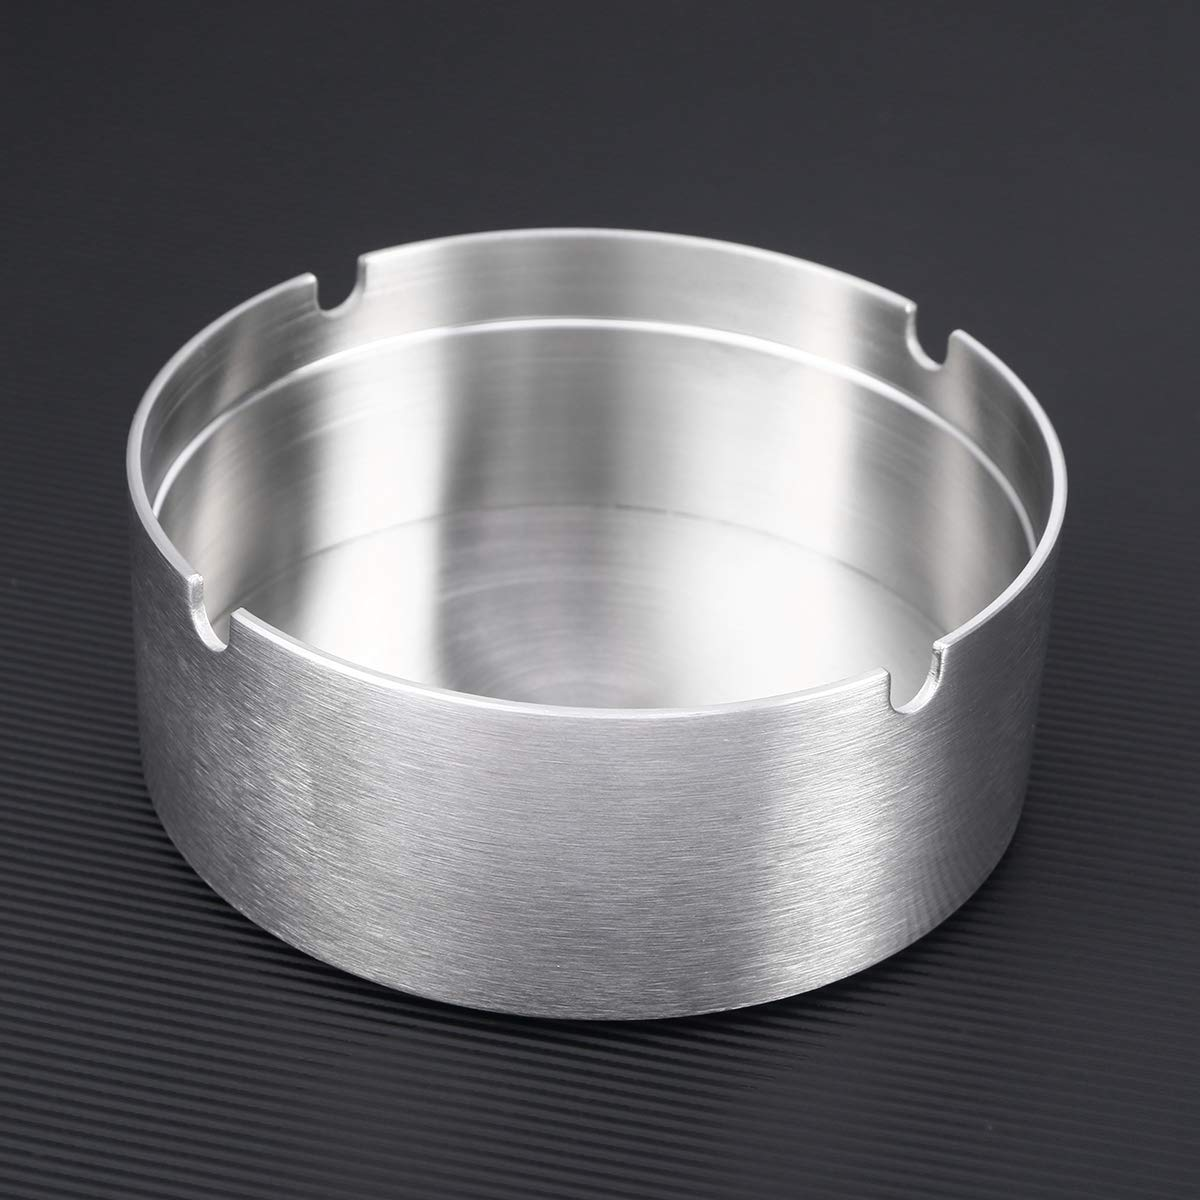 Vosarea Stainless steel modern tabletop ashtray round revolving ashtray with spinning tray windproof ashtray for hotel S sanding surface